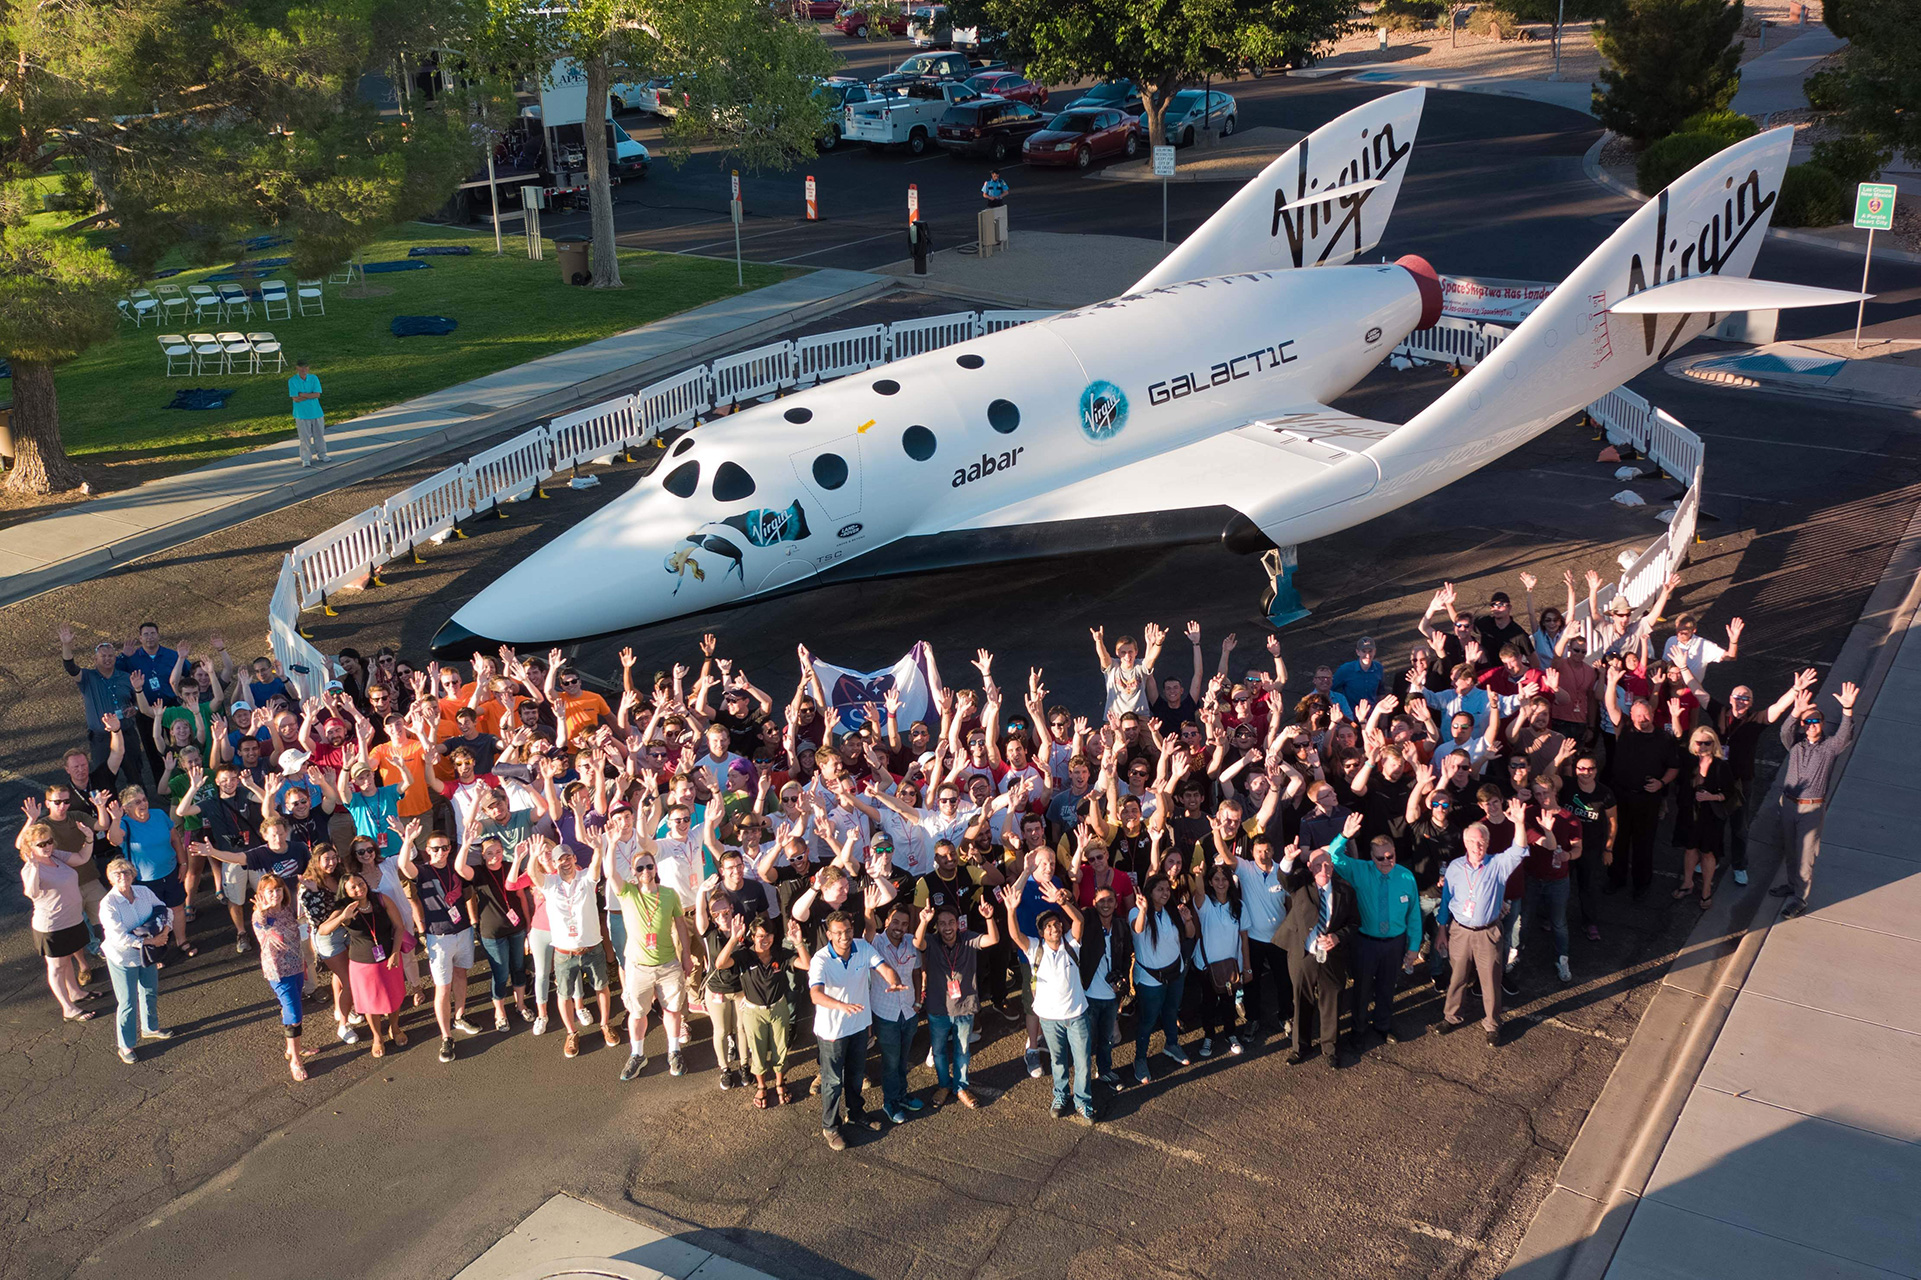 Aerial group photo of Las Cruces Space Festival attendees in front of Spaceship Replica